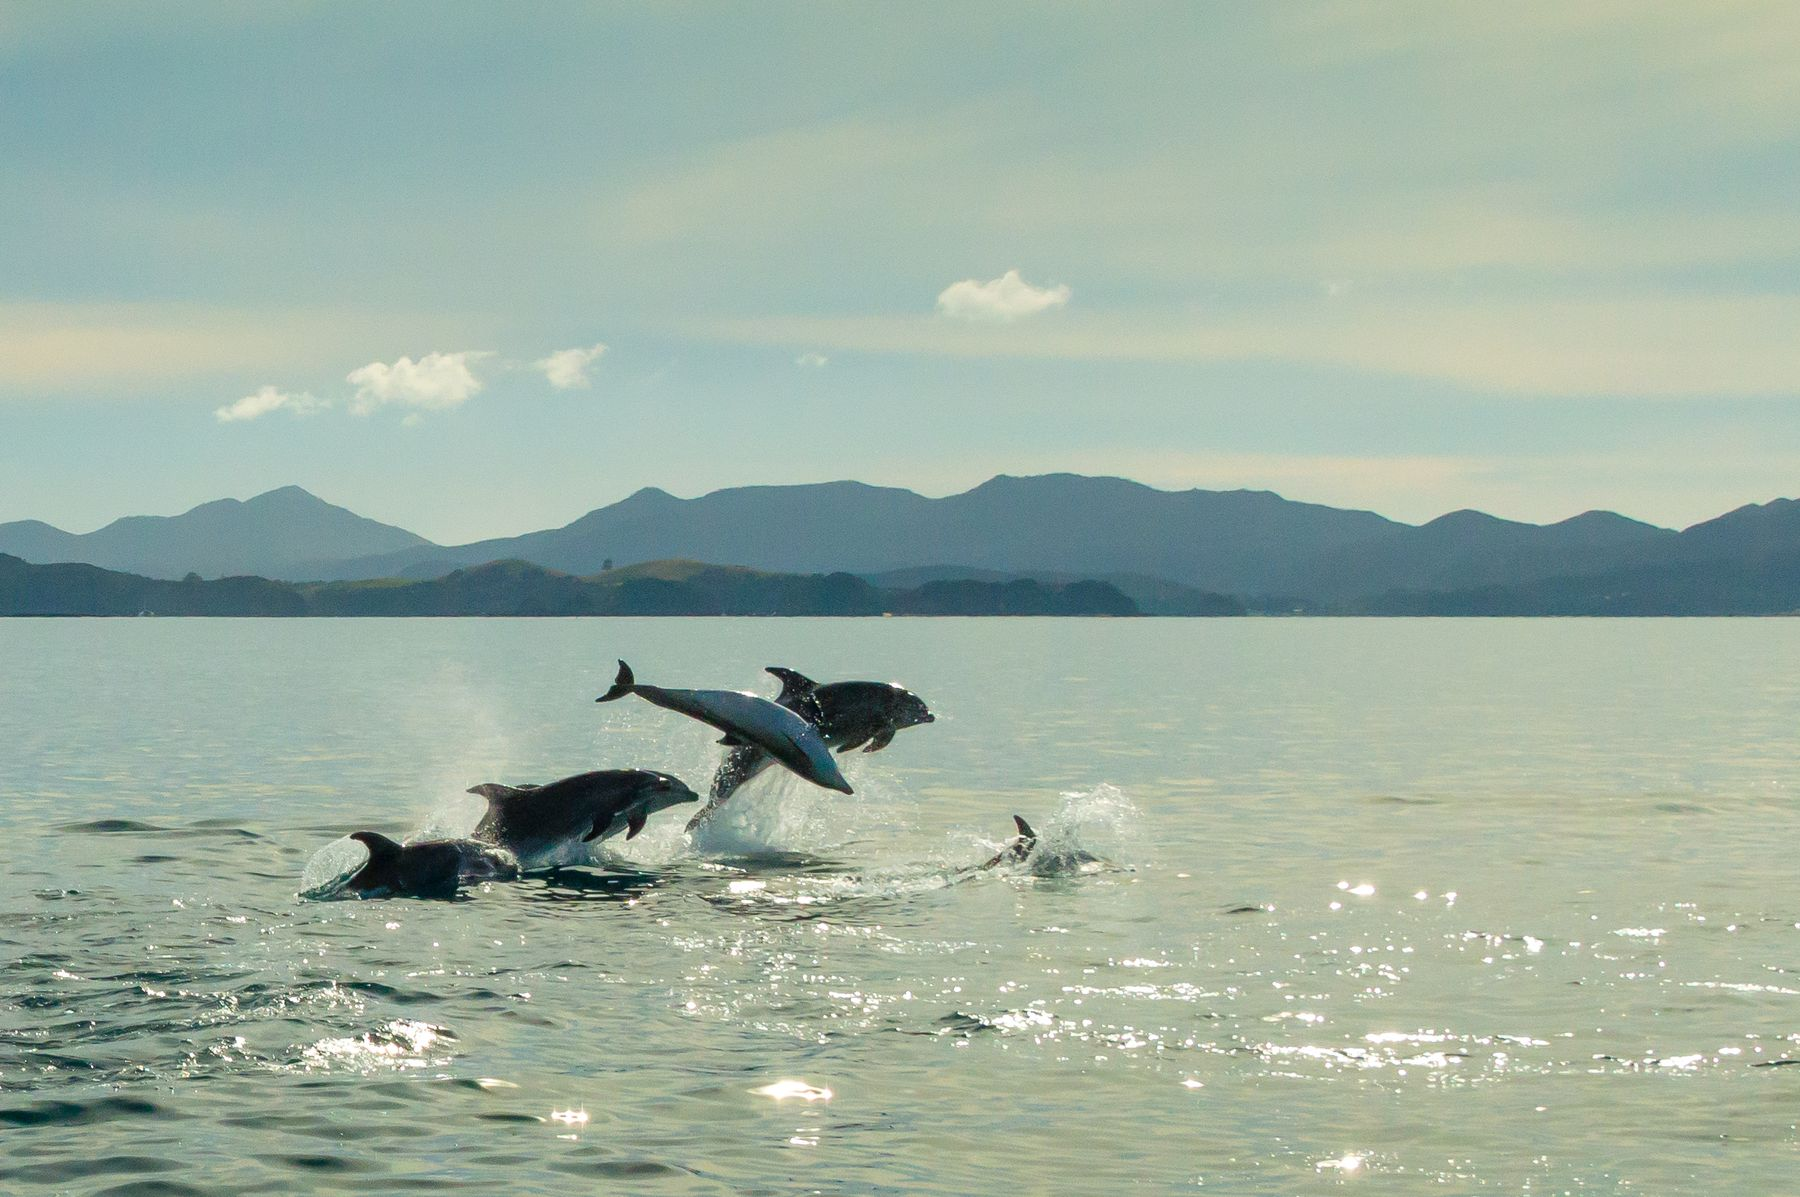 four dolphins jumping in the ocean with mountains in the background